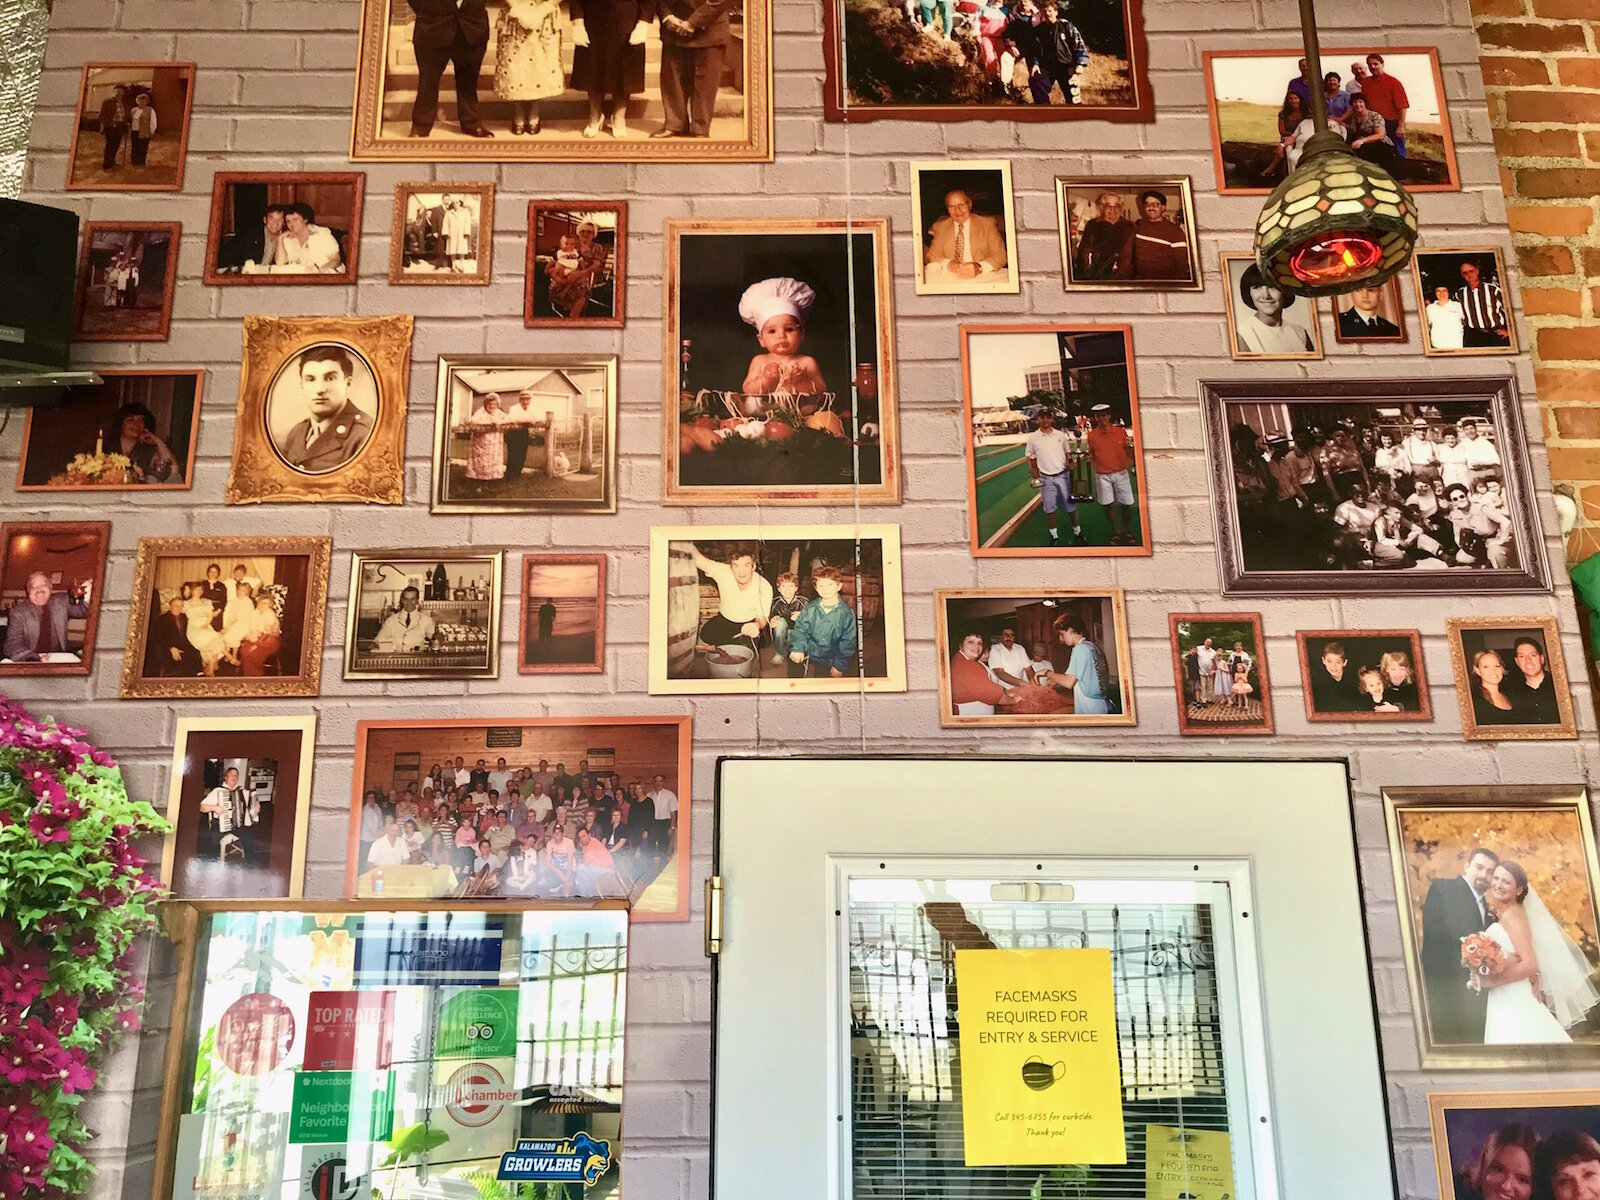 The menu at Comensoli's Italian Bistro is made primarily of recipes contributed by members of the Comensoli family, who immigrated to Michigan from Italy two generations ago.